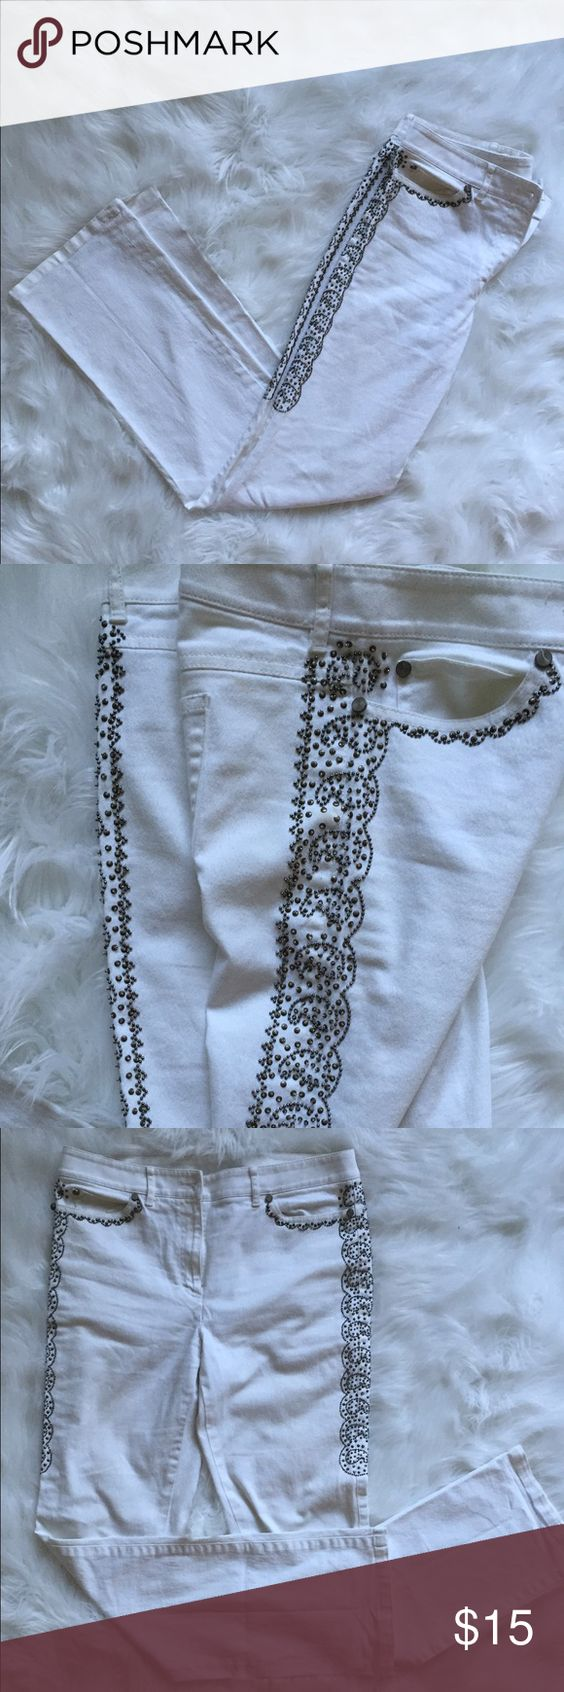 White Jeans Size 6